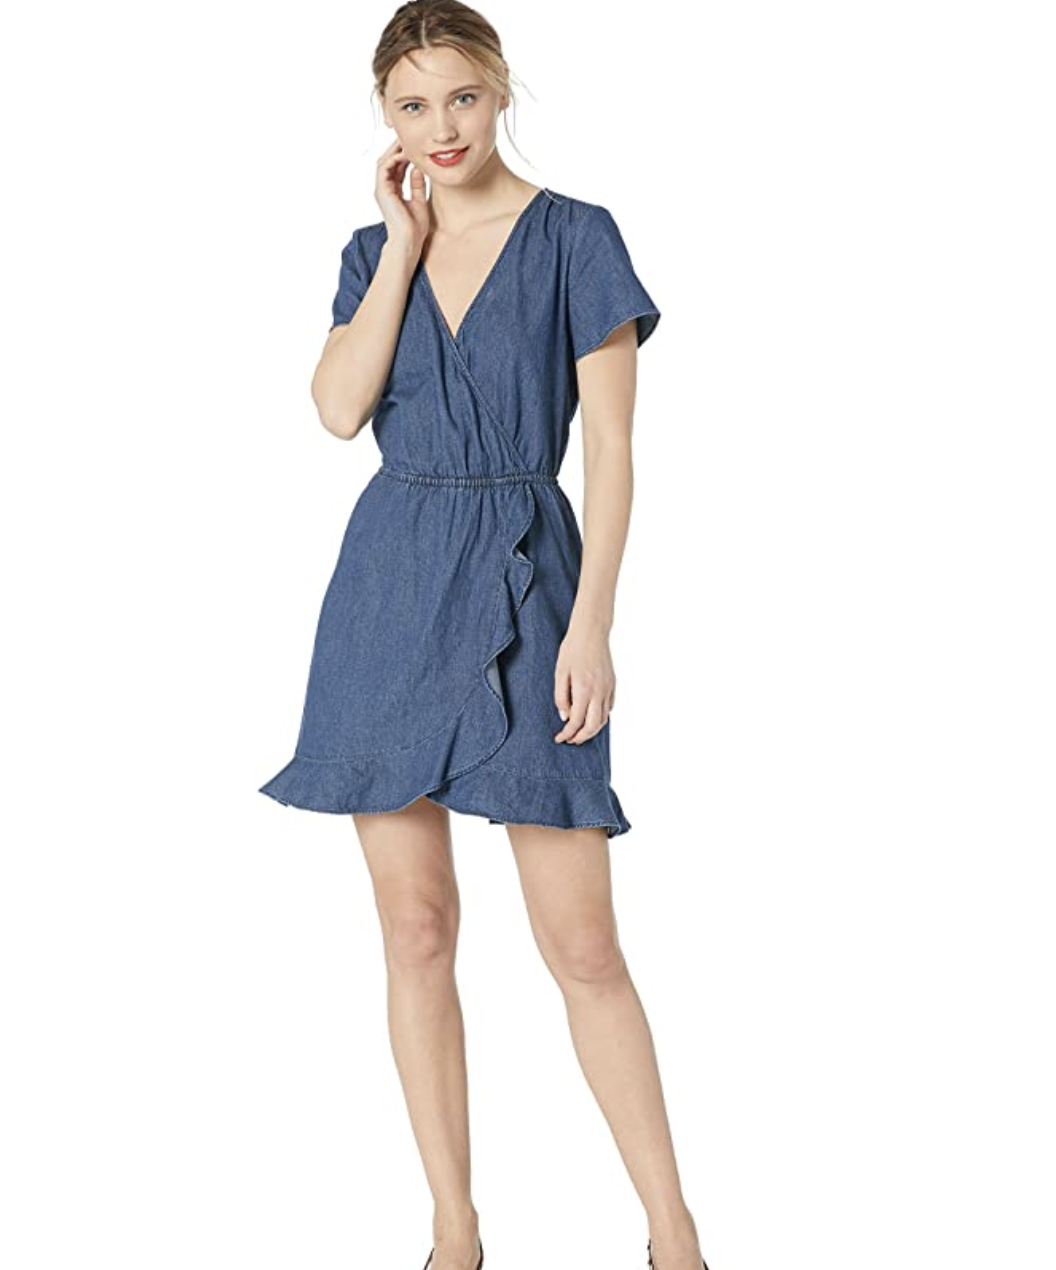 A model in a short-sleeved chambray wrap dress with a V-neck and a ruffled hem  that falls mid-thigh